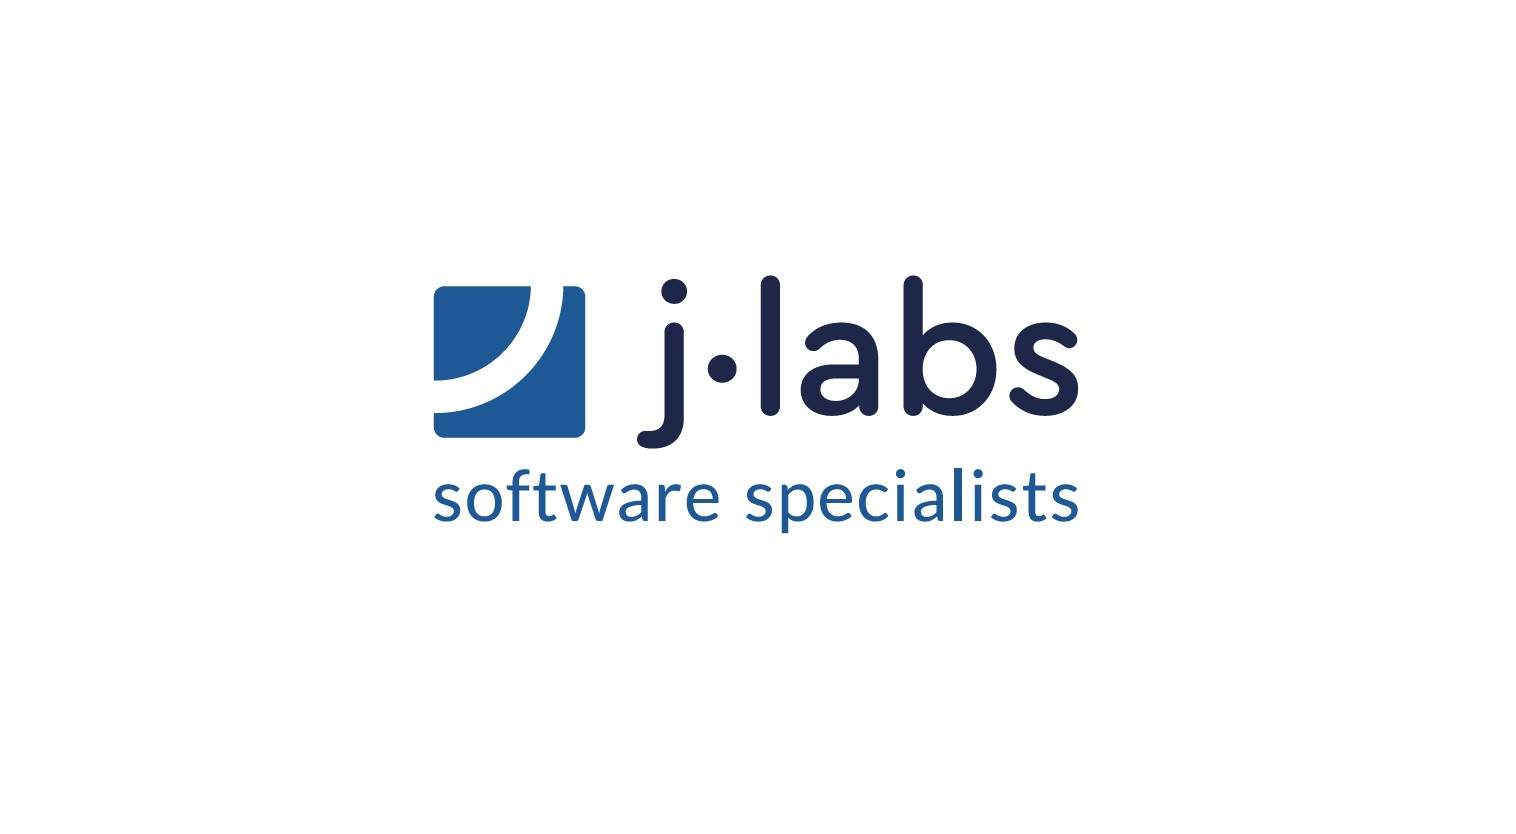 j-labs software specialists Logo